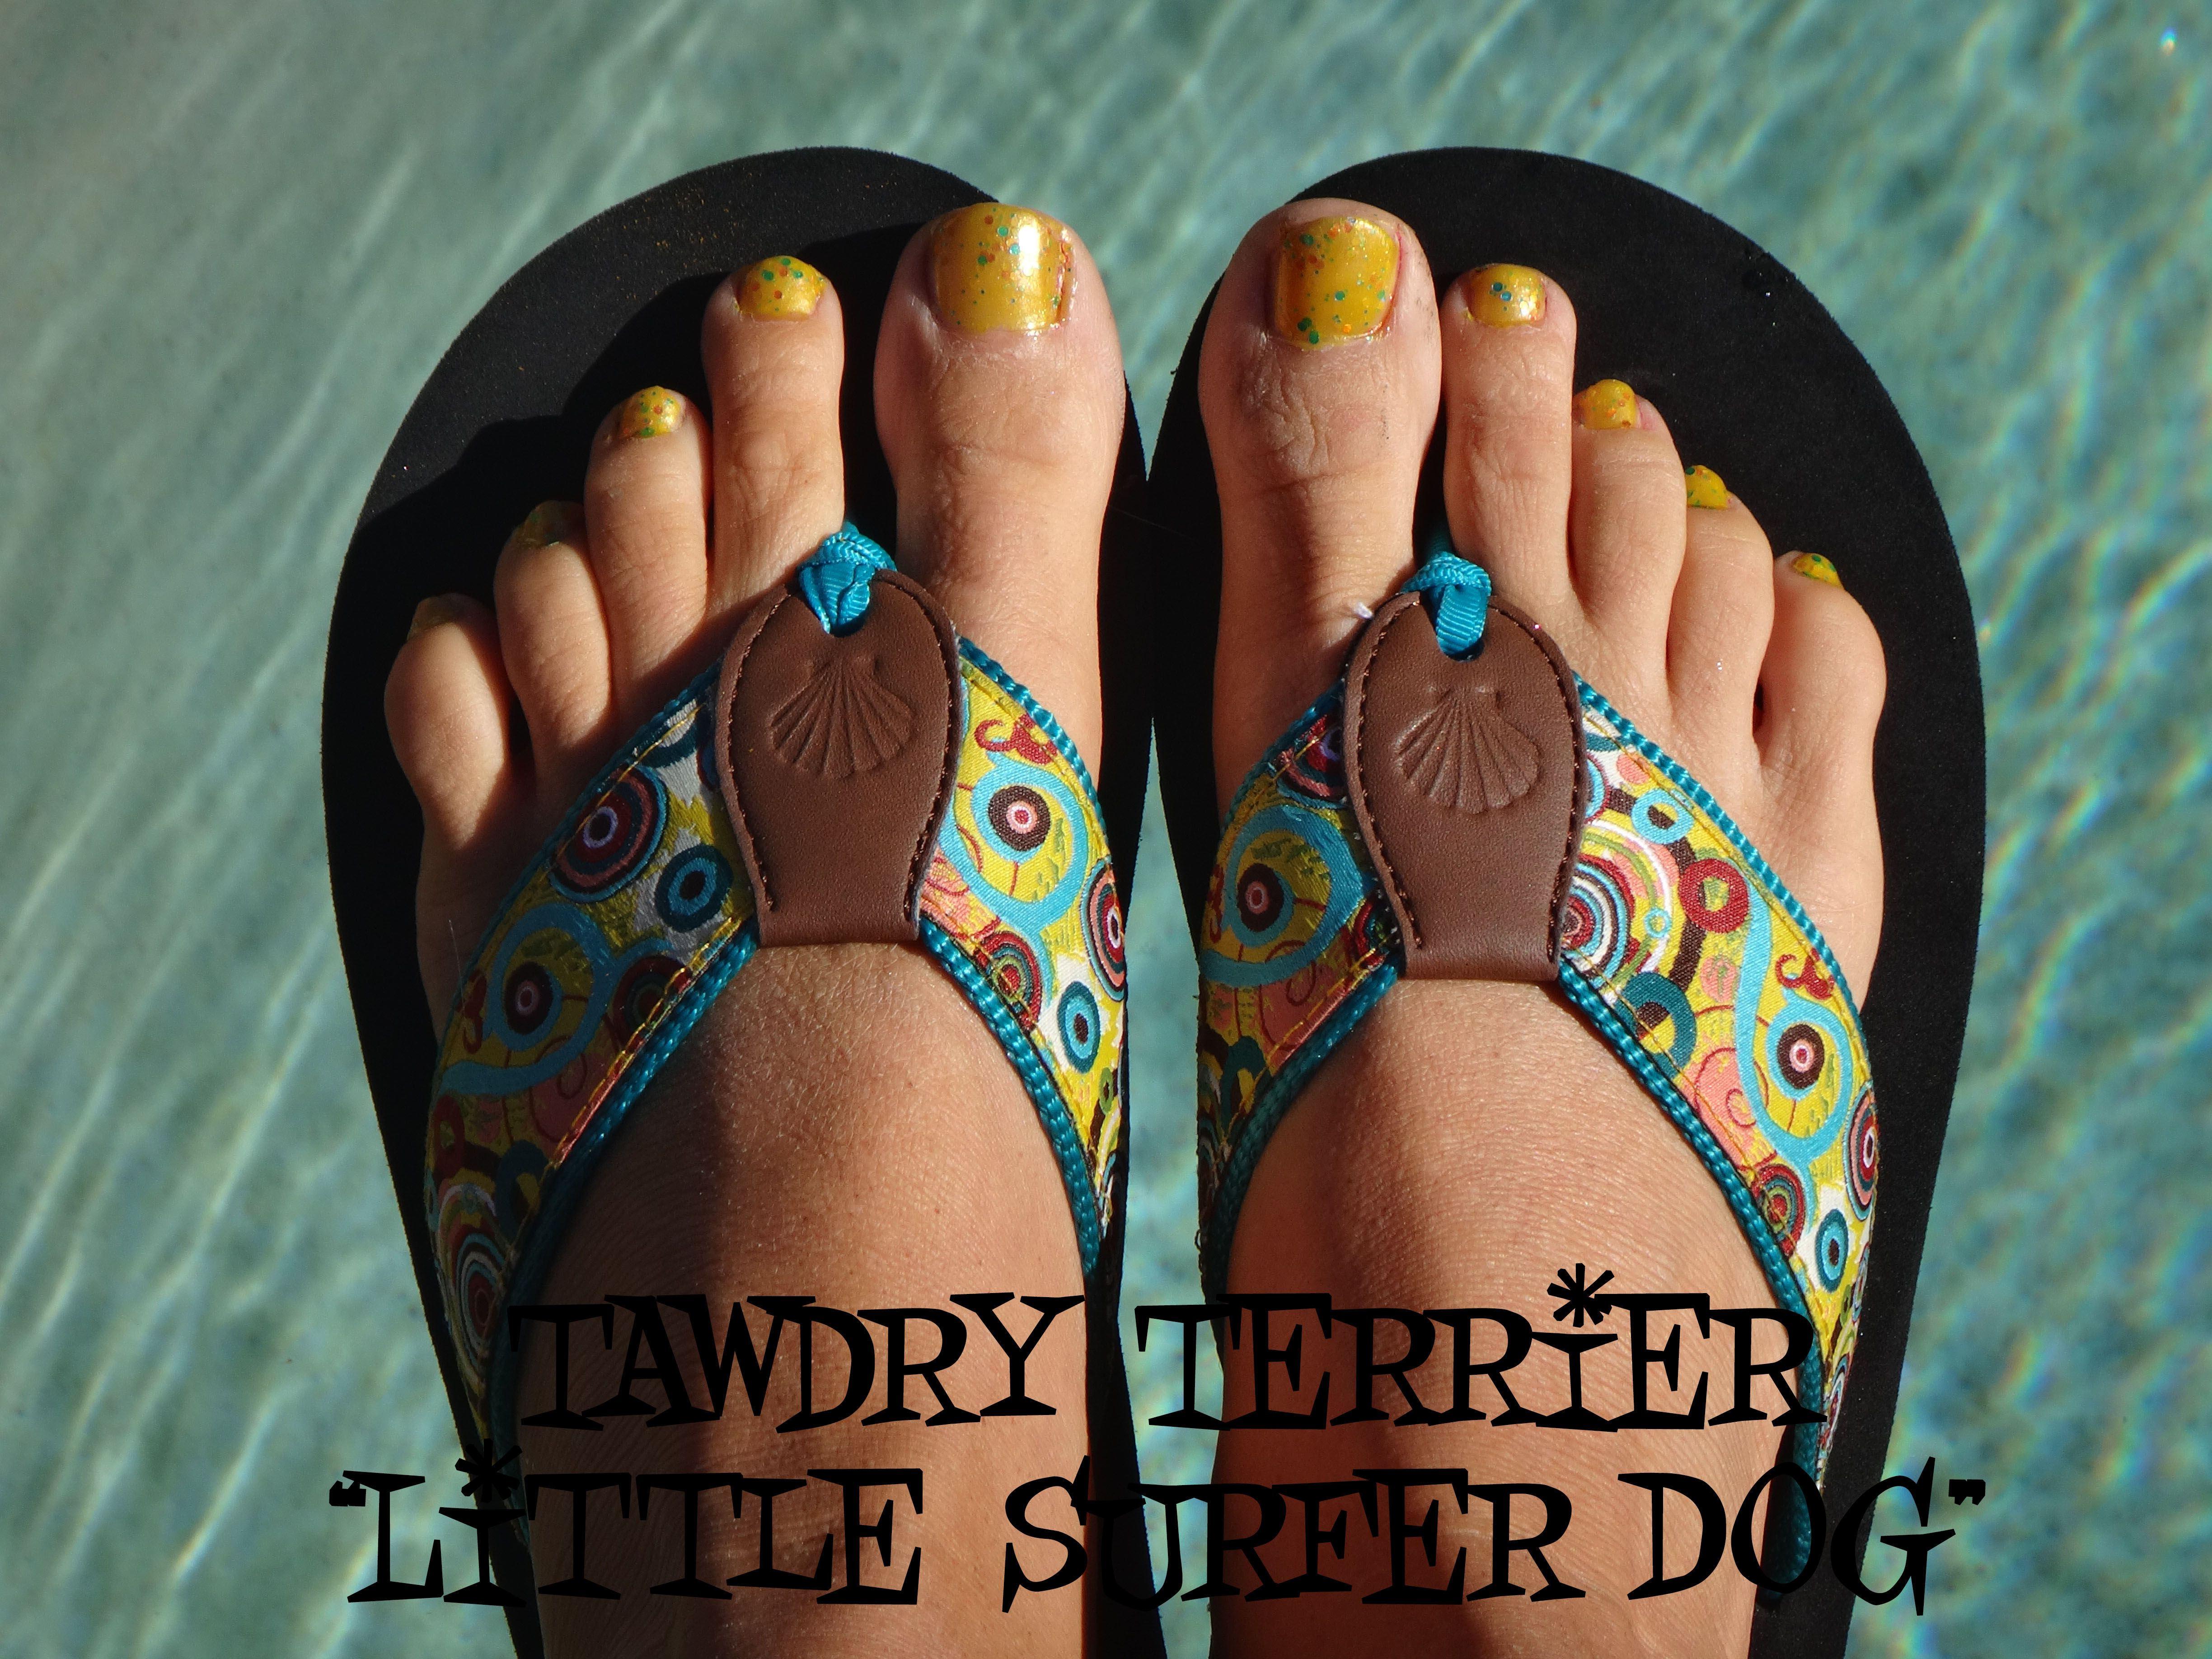 "@TawdryTerrier ""Little Surfer Dog"" - available at https://www.etsy.com/shop/TawdryTerrier #nailpolish #indienailpolish #tawdryterrier"